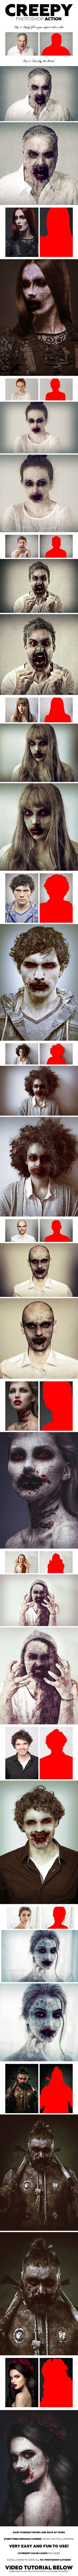 #Creepy #Photoshop #Action - Photo Effects Actions